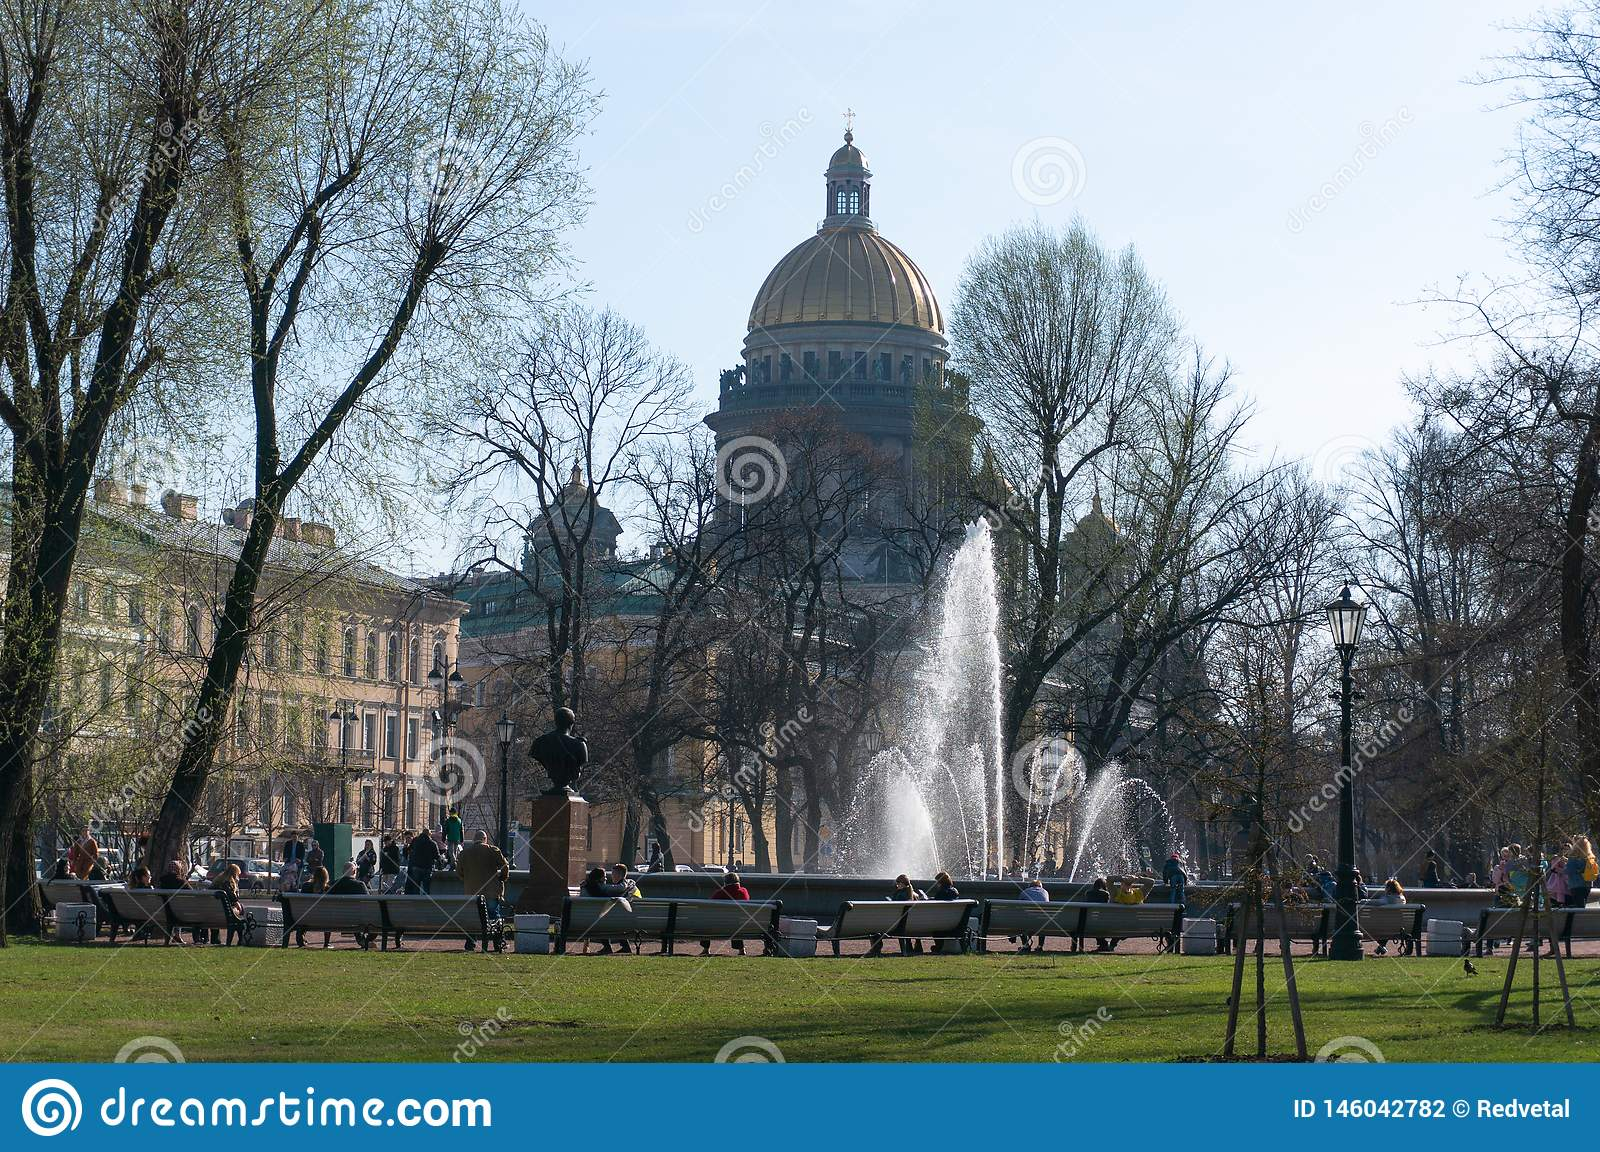 The fountain at the main entrance to the Admiralty building in St. Petersburg. People walk around